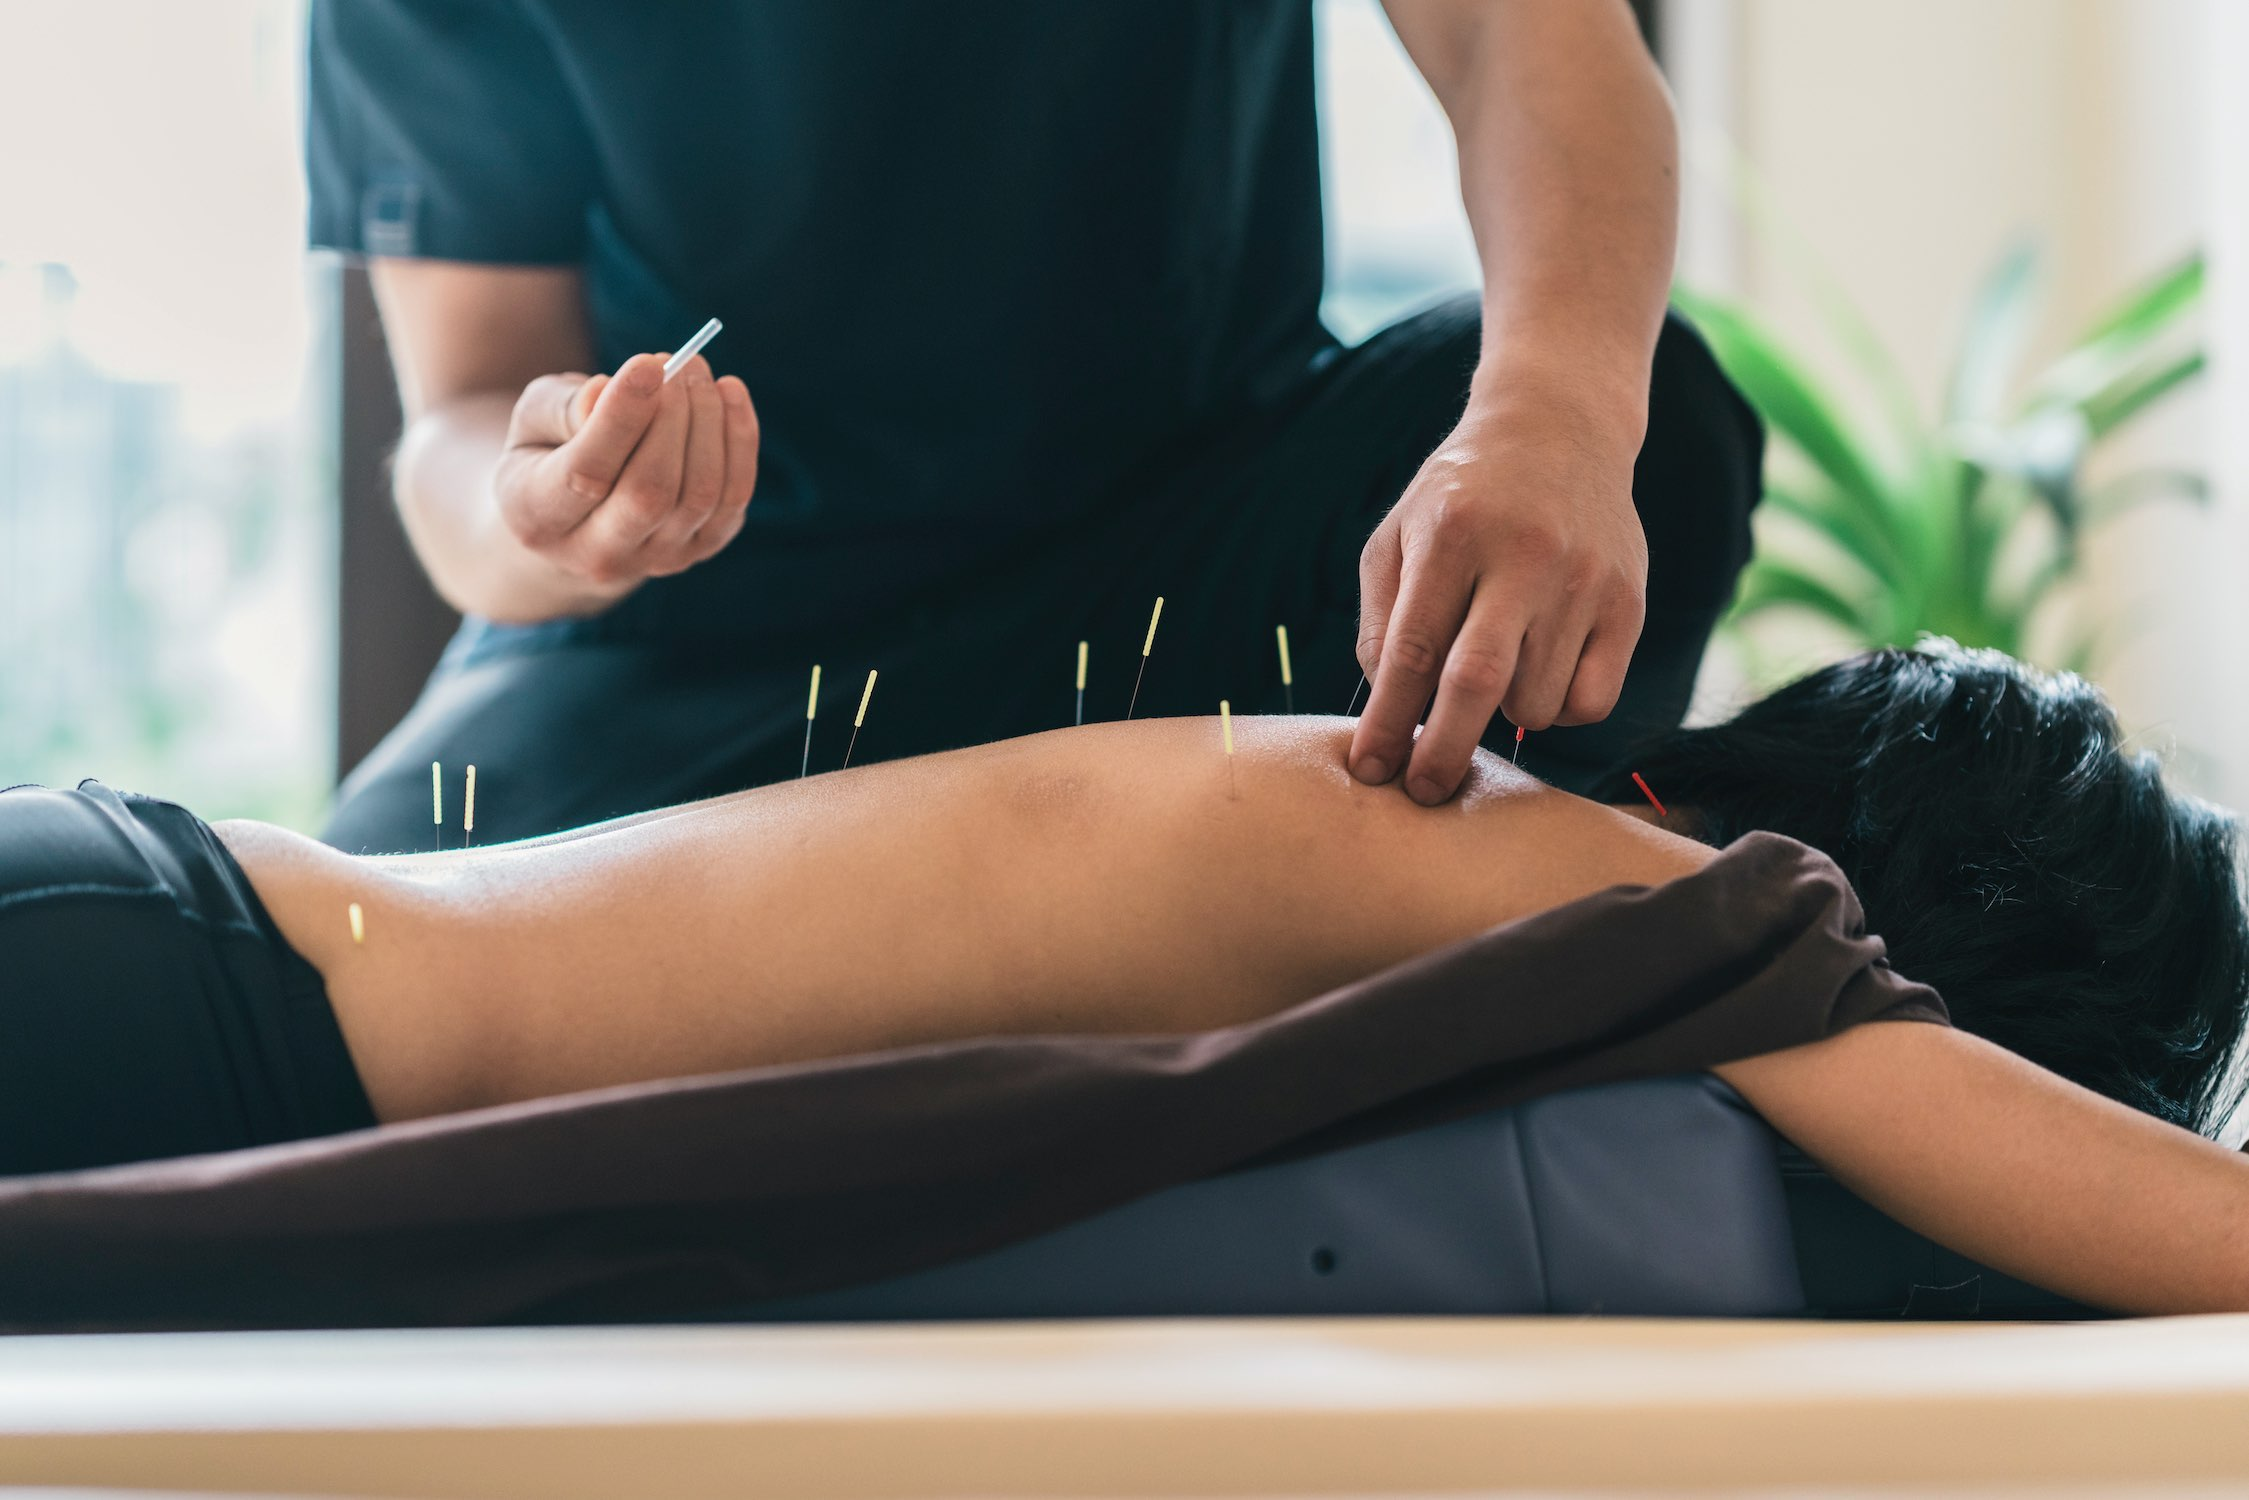 Acupuncture with a Japanese therapist